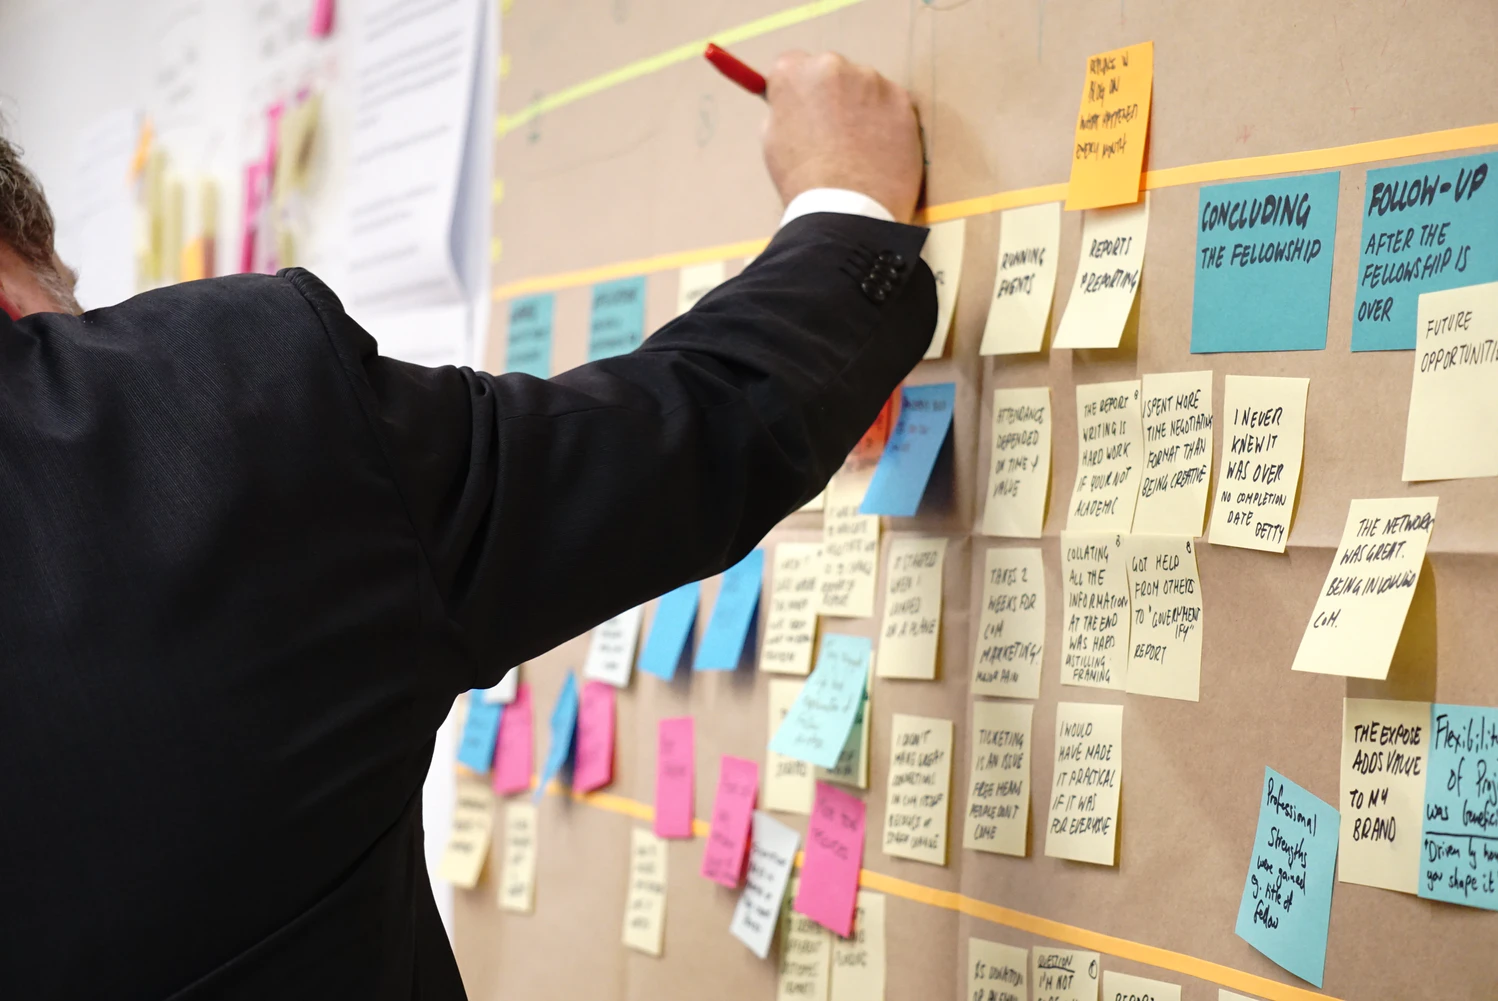 Various sticky notes are posted and arranged on a board with a man leading the discussion